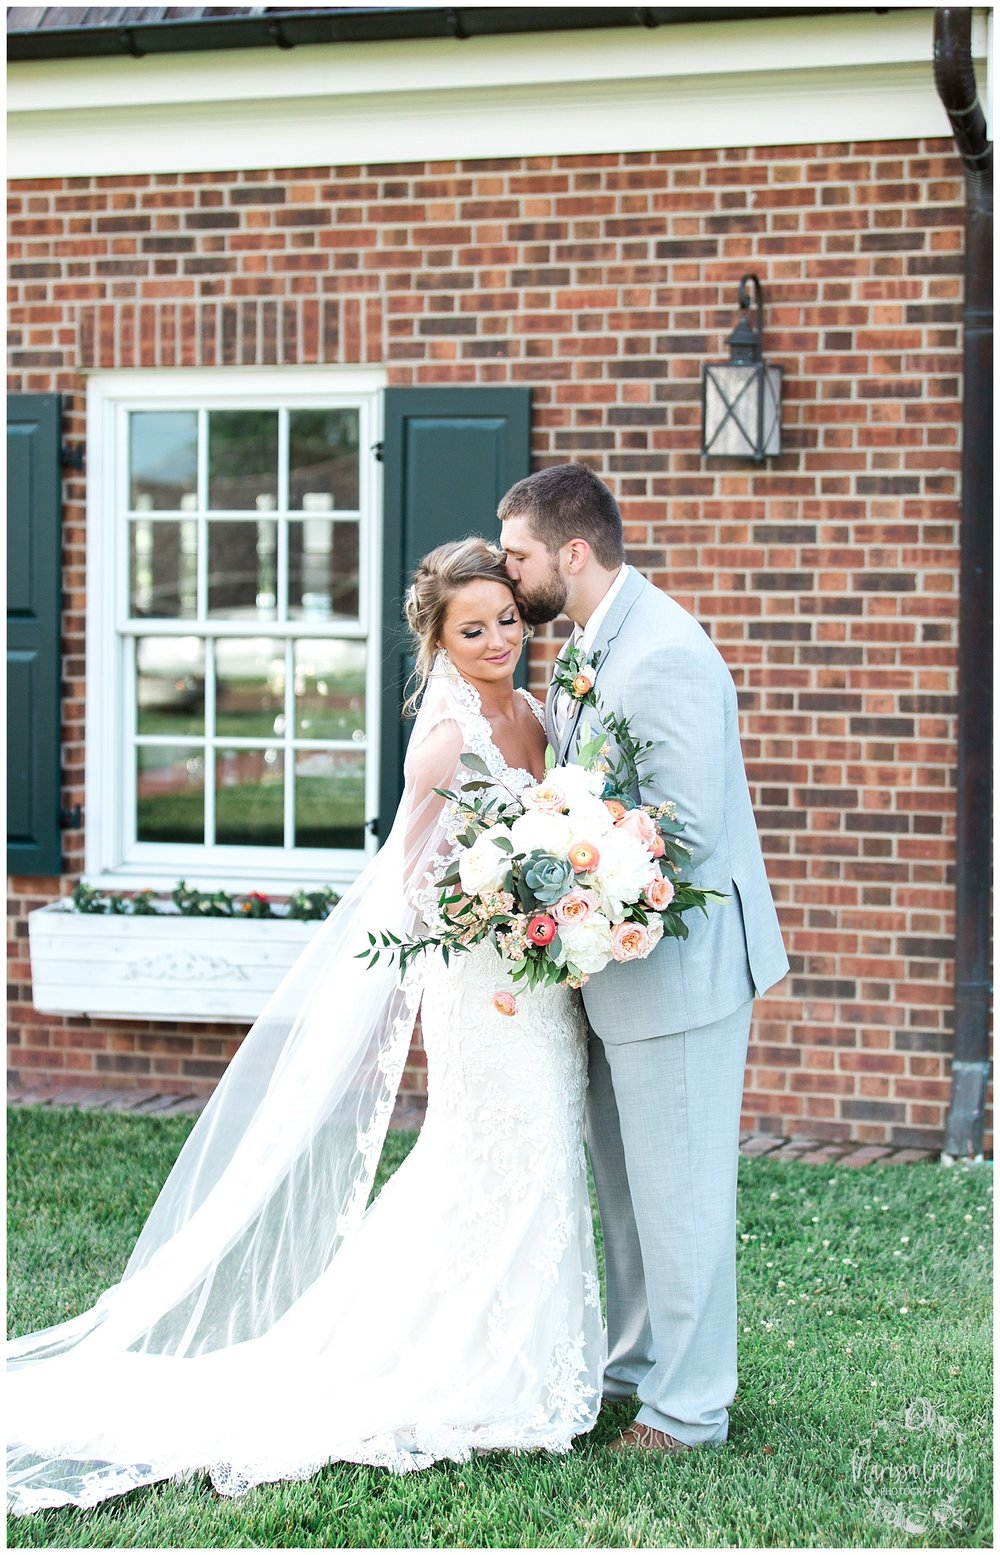 CHELSEY & TRAVIS MARRIED | MILDALE FARM WEDDING | KC WEDDING PHOTOGRAPHERS | MARISSA CRIBBS PHOTOGRAPHY_1313.jpg